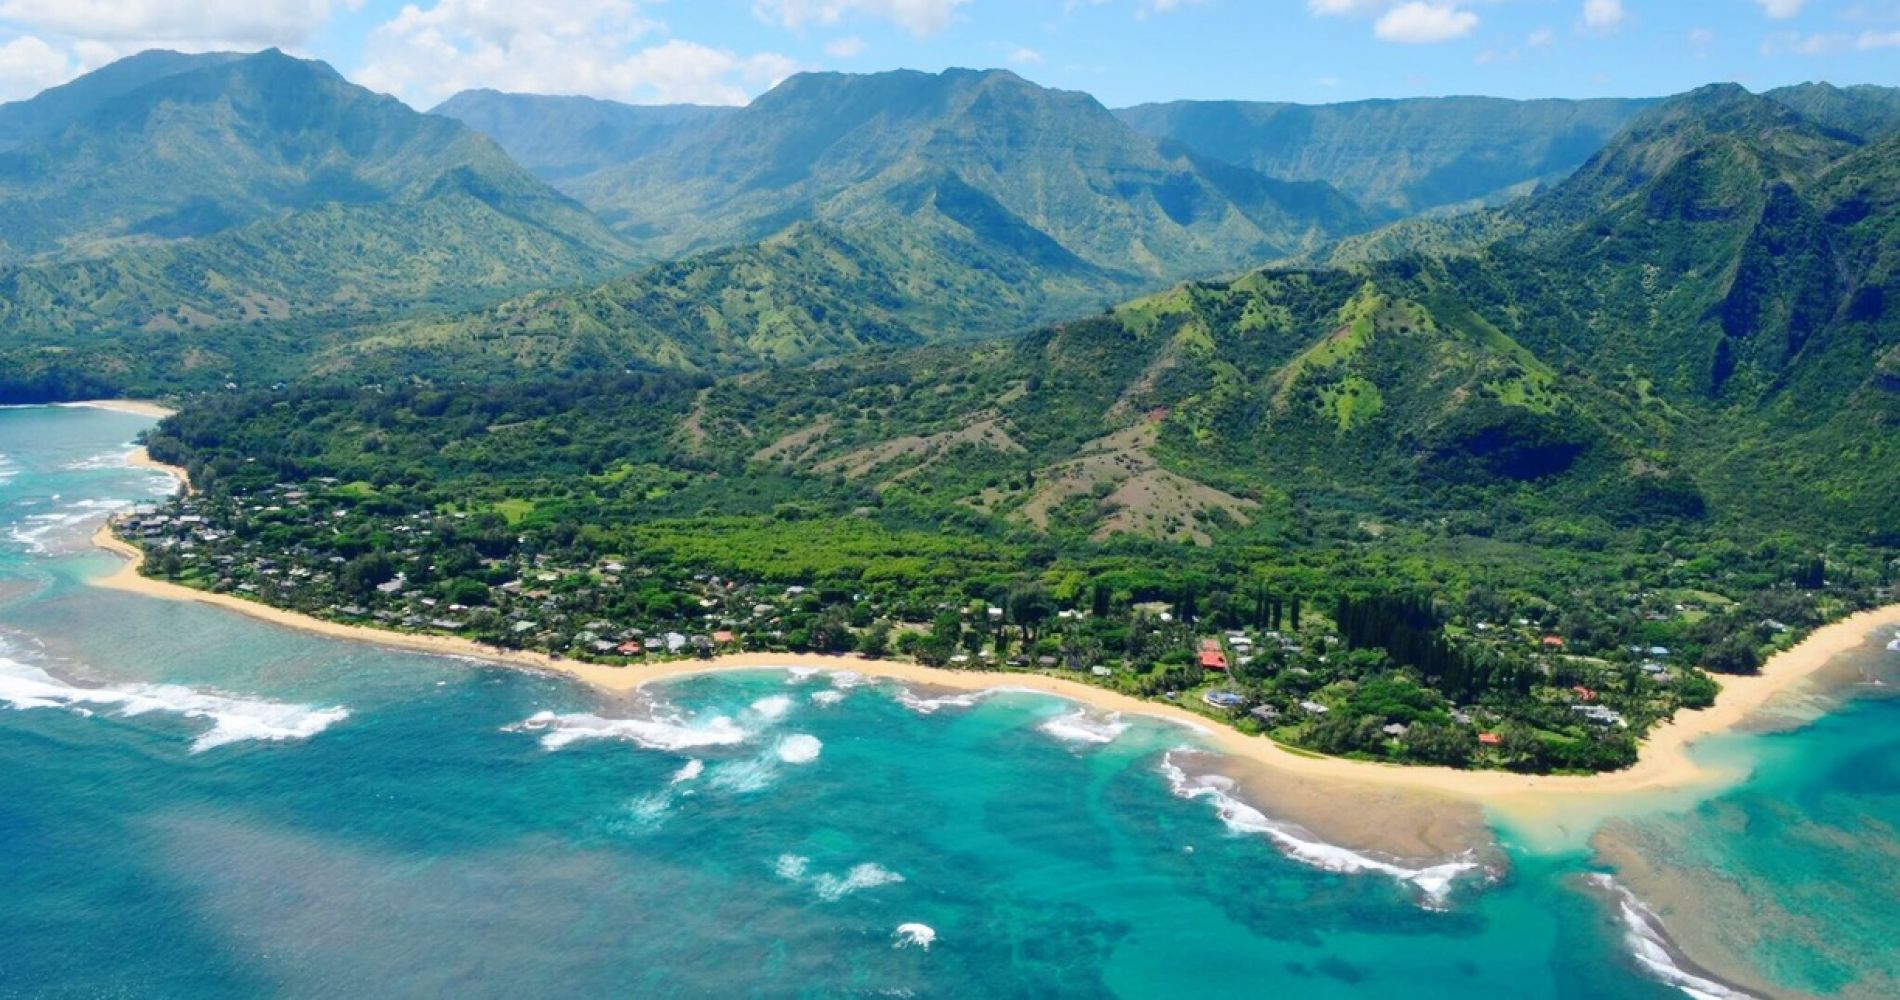 Helicopter flight over Kauai